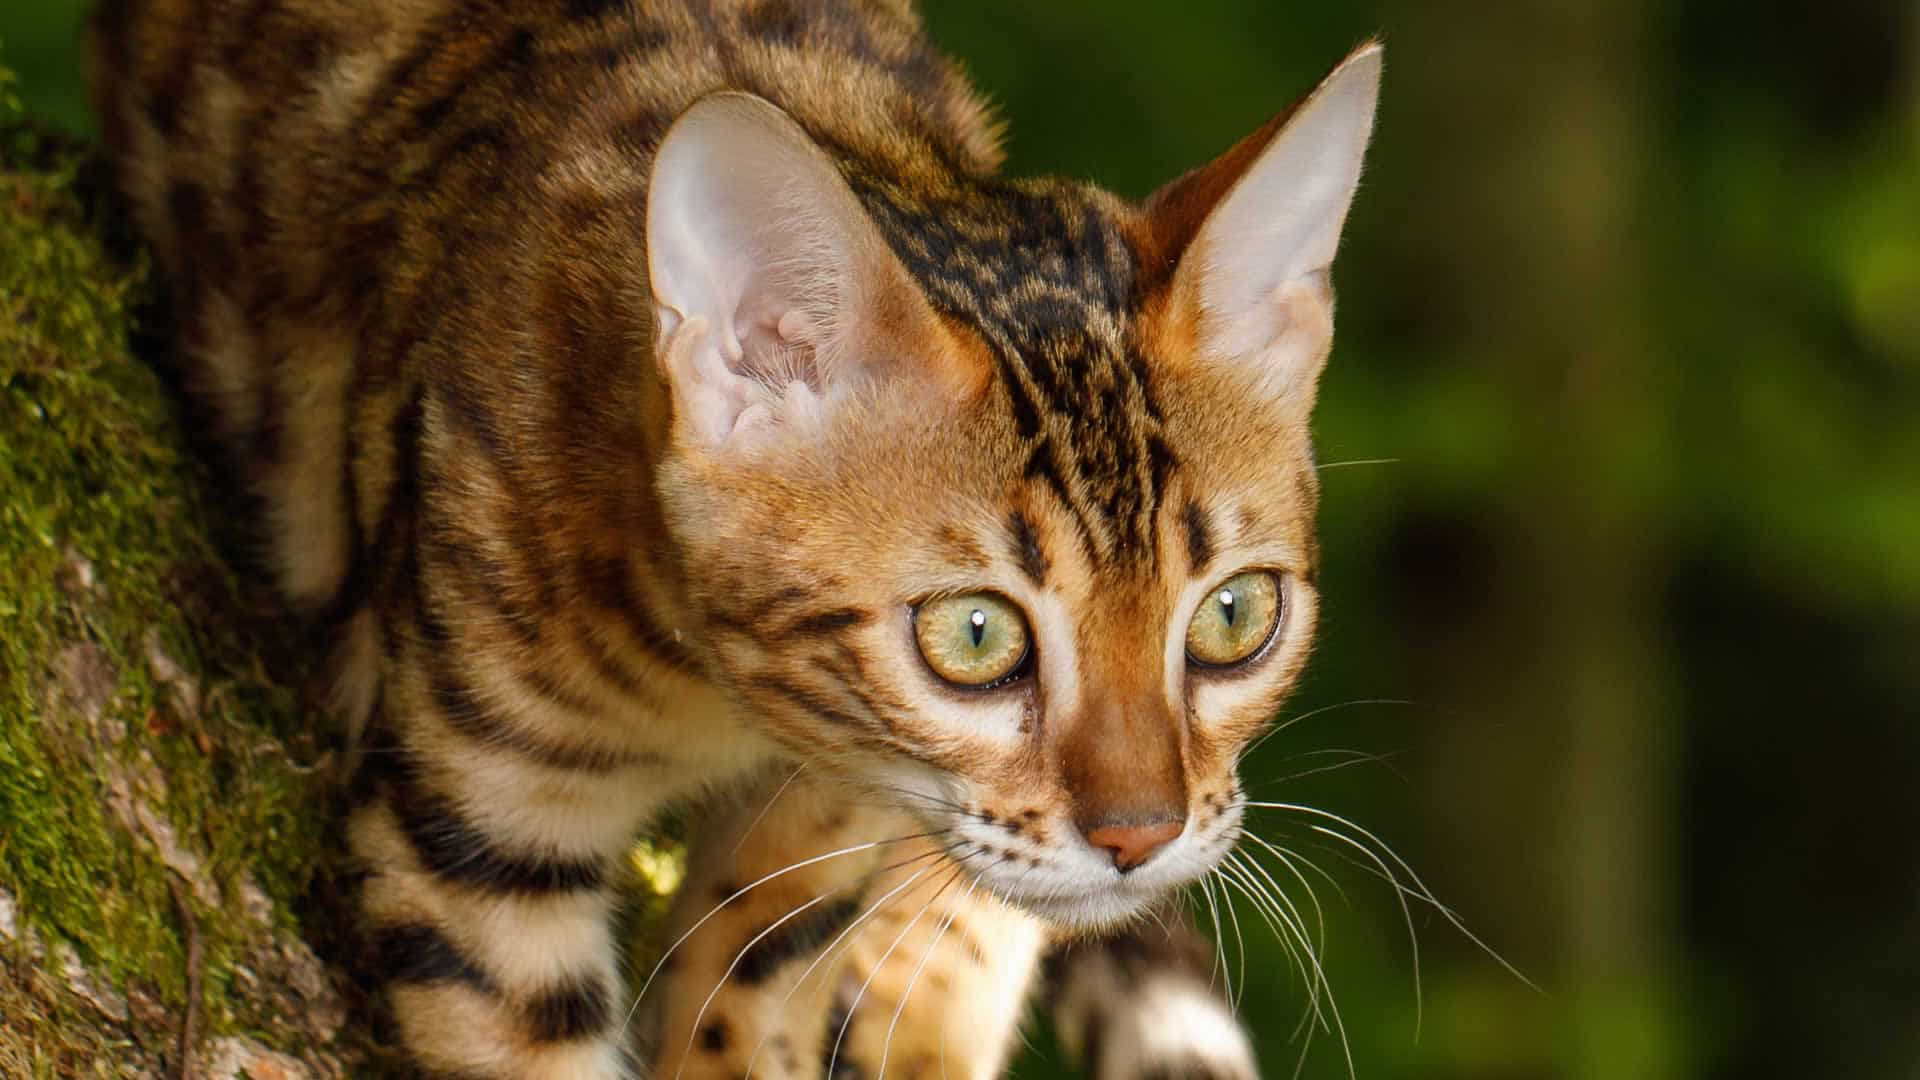 Bengals commonly have big yellow eyes reminiscent of big cats